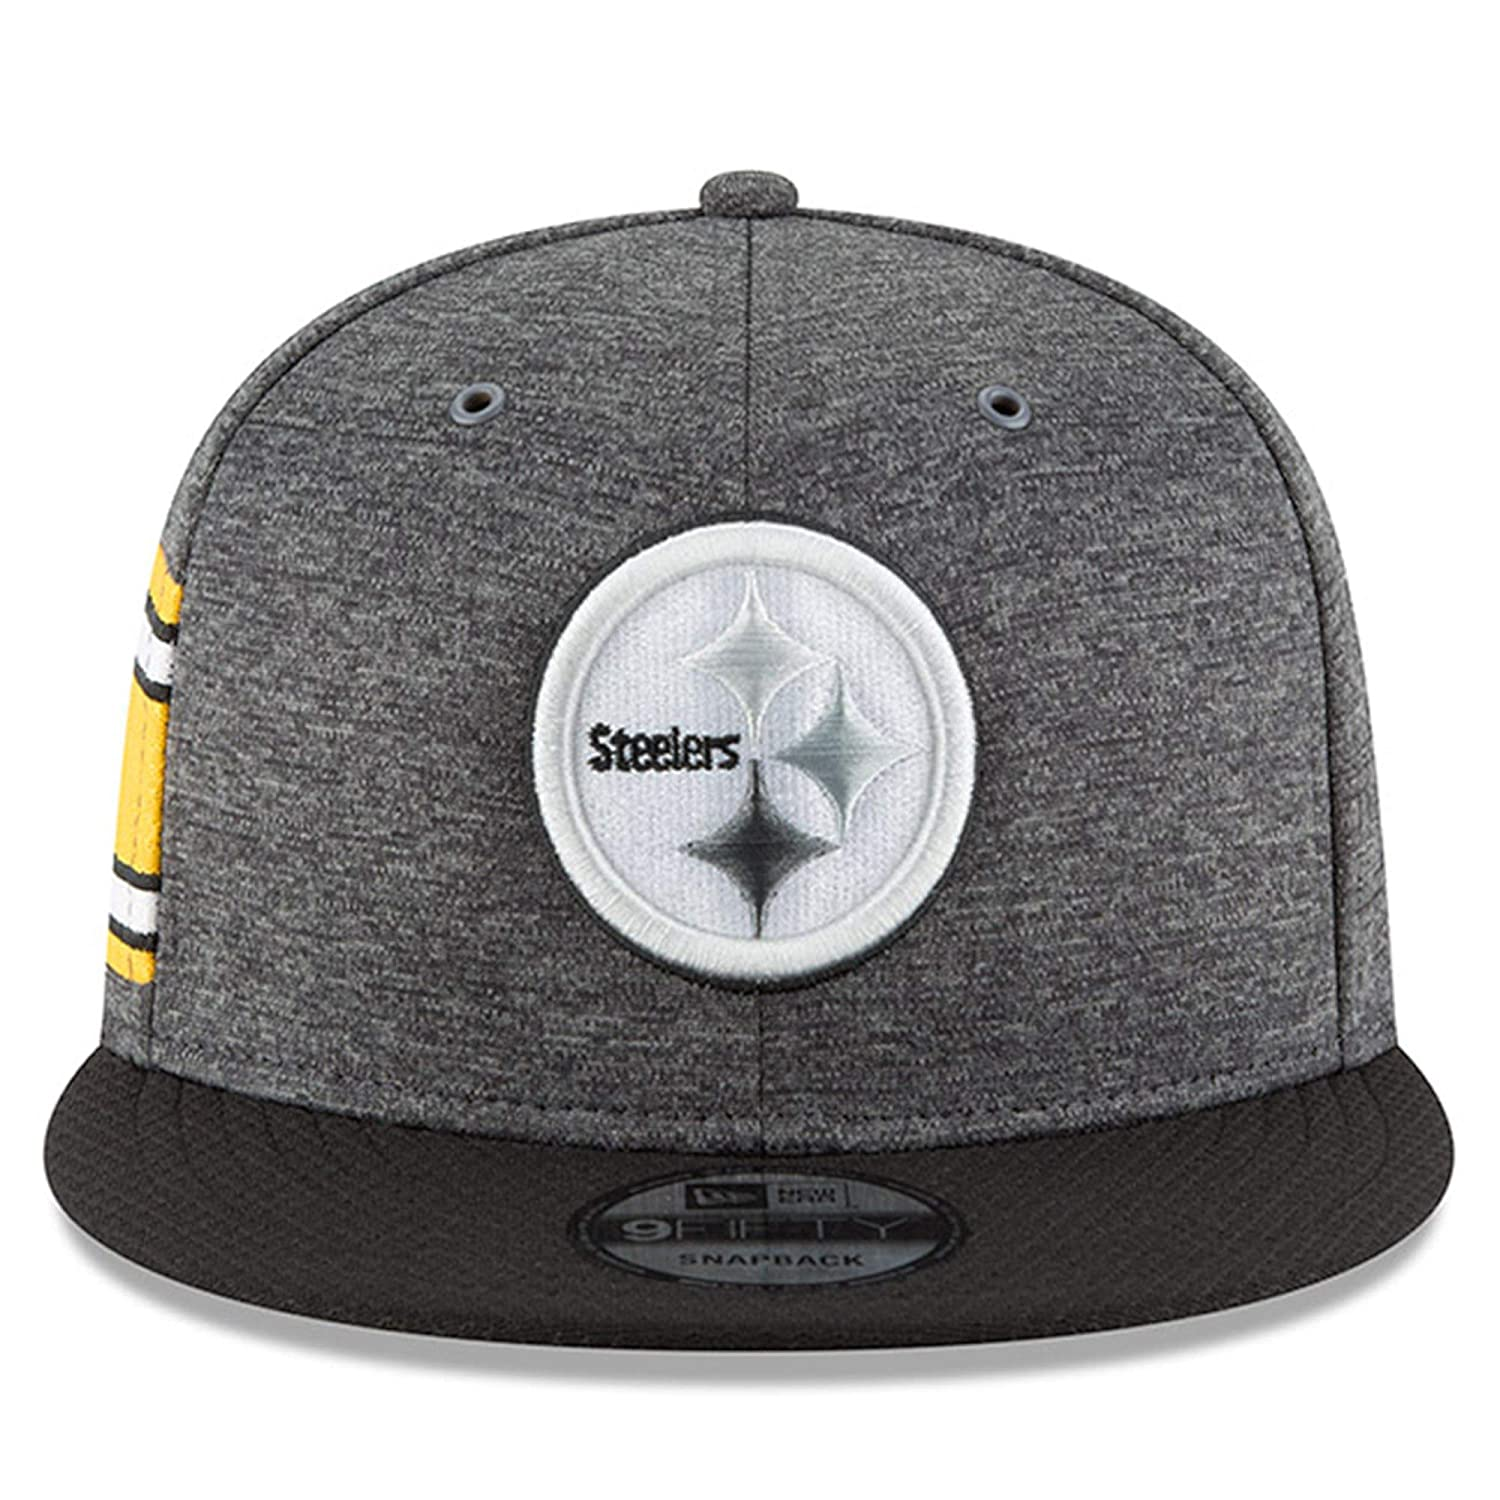 df743a447 Amazon.com   New Era Pittsburgh Steelers 2018 Sideline Onfield NFL Graphite  Charcoal Black 9Fifty Snapback Adjustable Hat